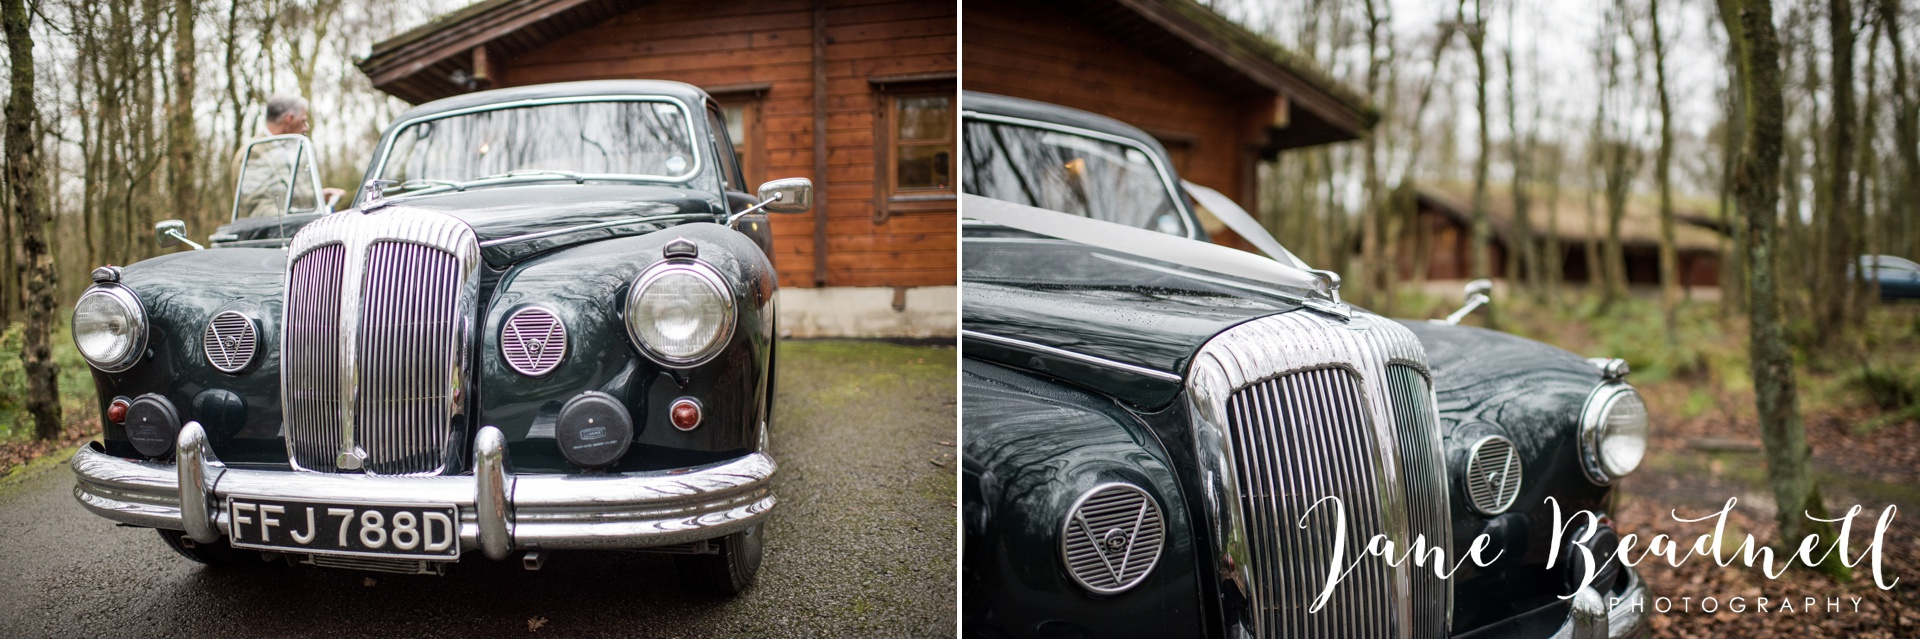 Otley Chevin Country Spa Hotel wedding Otley by Jane Beadnell Photography_0018